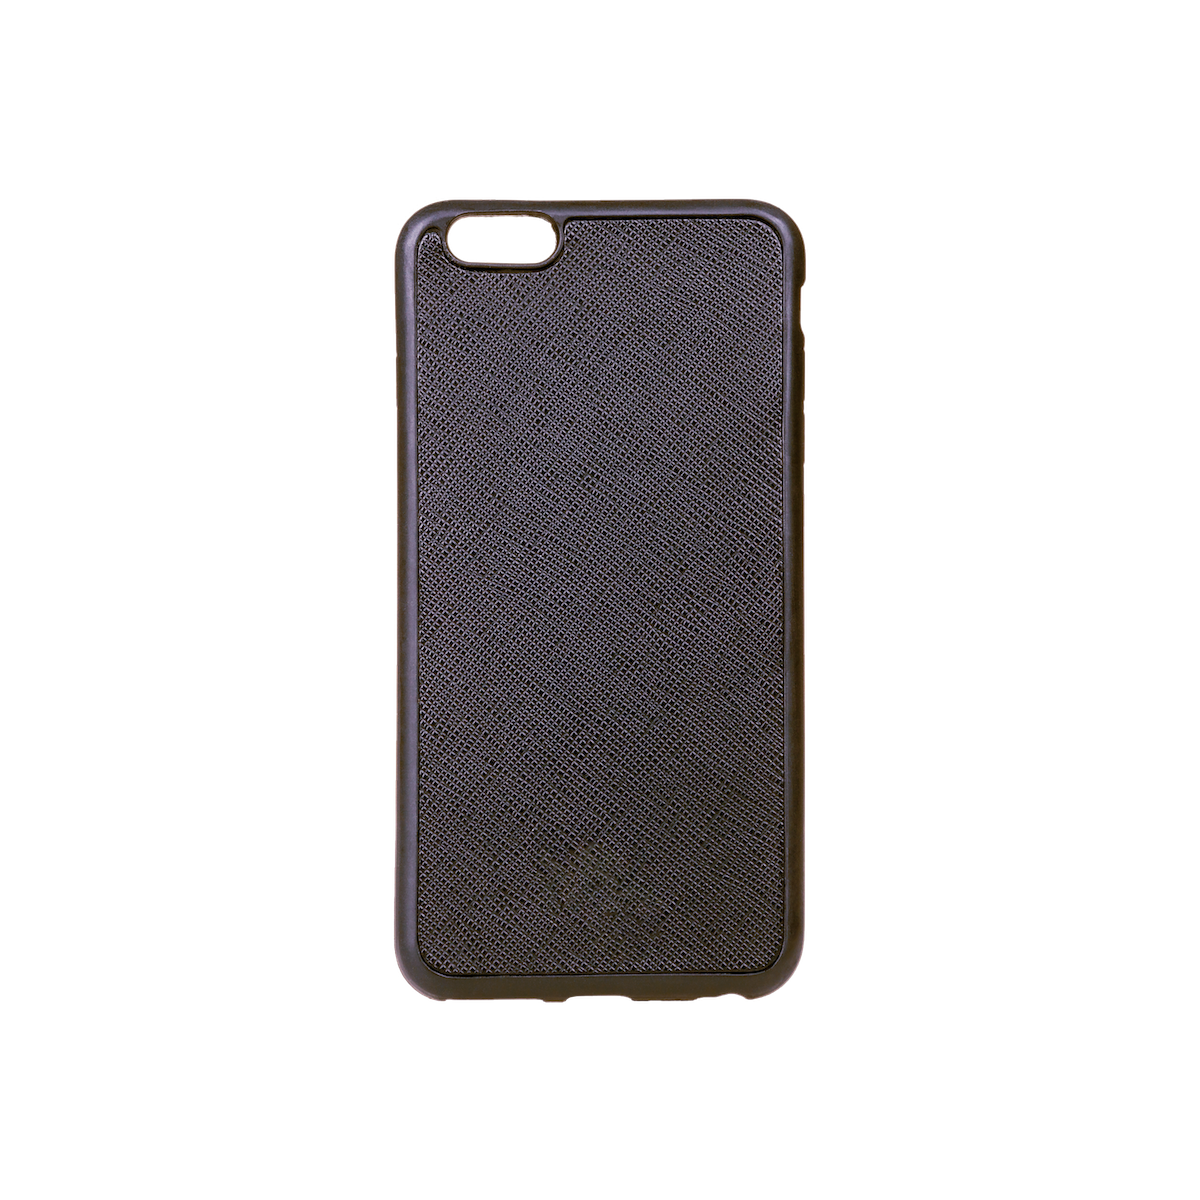 Iphone 6 Plus Case, Saffiano Leather, MAISON JMK-VONMEL Luxe Gifts